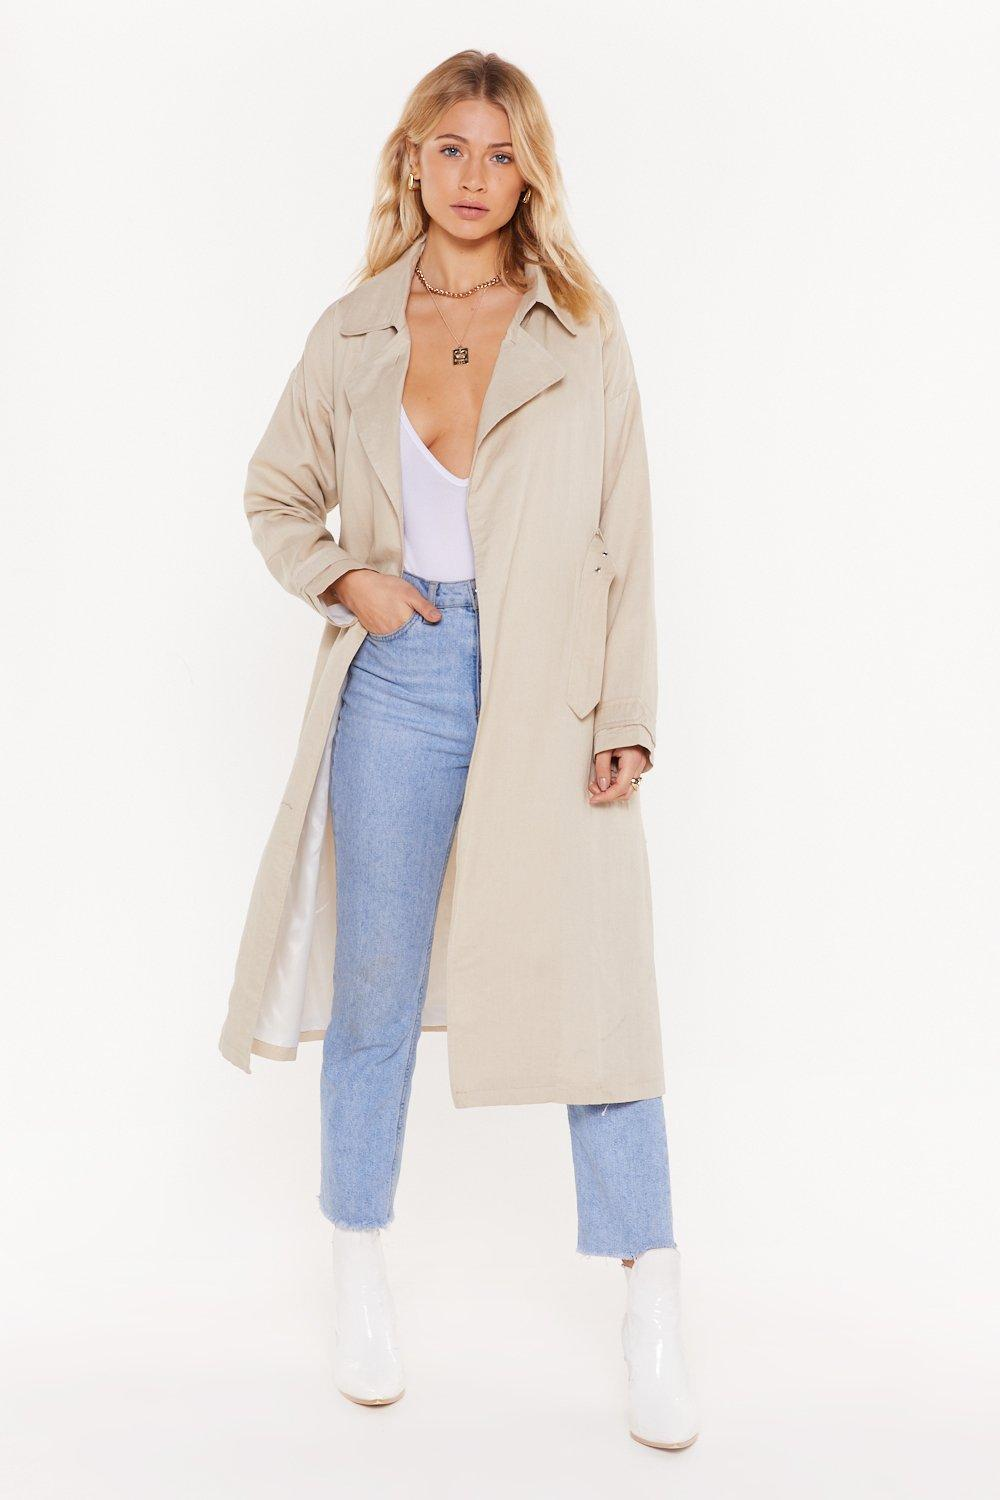 Save It For A Rainy Day Trench Coat by Nasty Gal